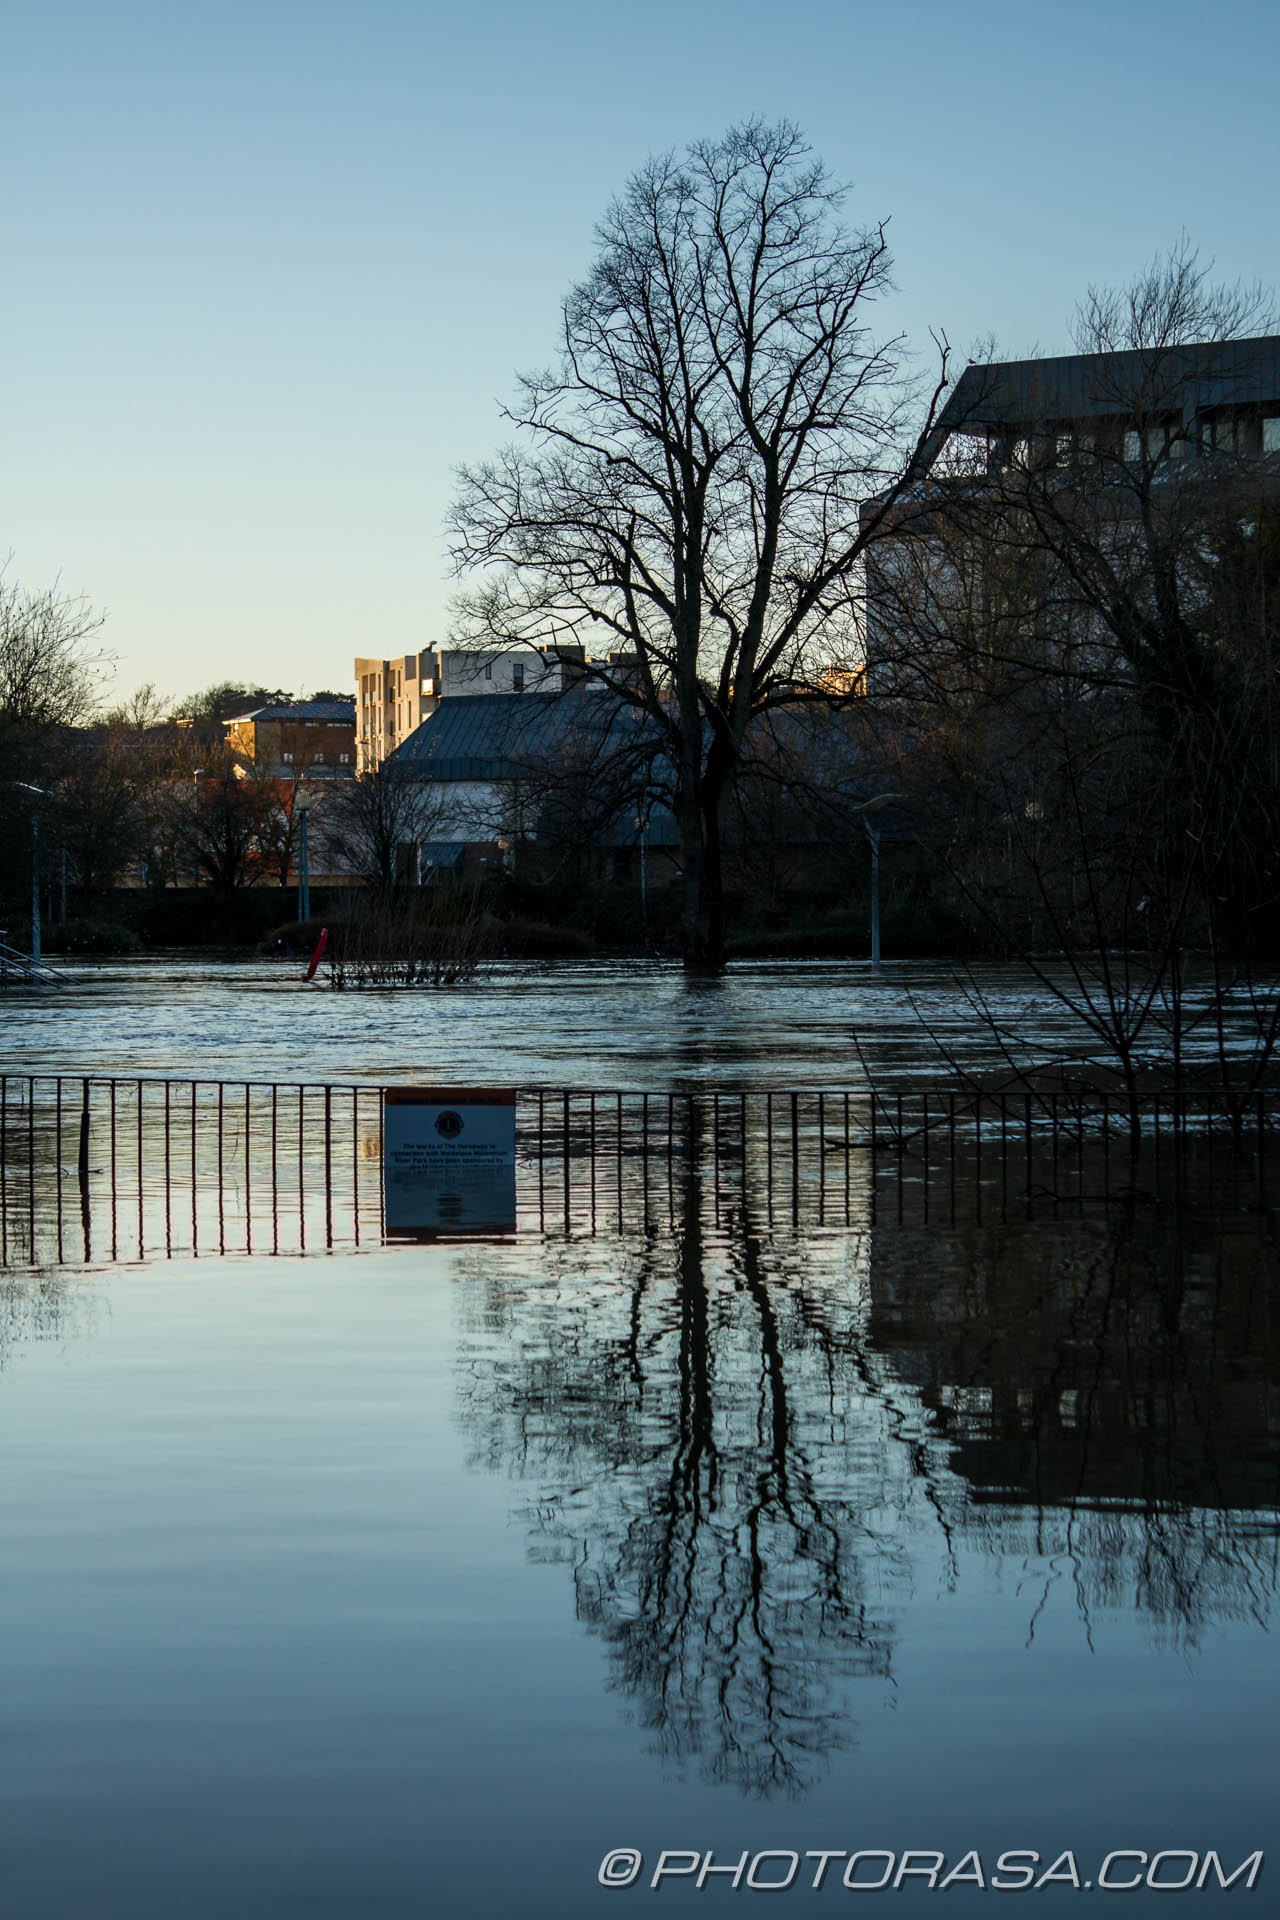 http://photorasa.com/wet-xmas-maidstone-river-medway-floods-town-centre/submerged-tree-near-maidstone-law-courts/